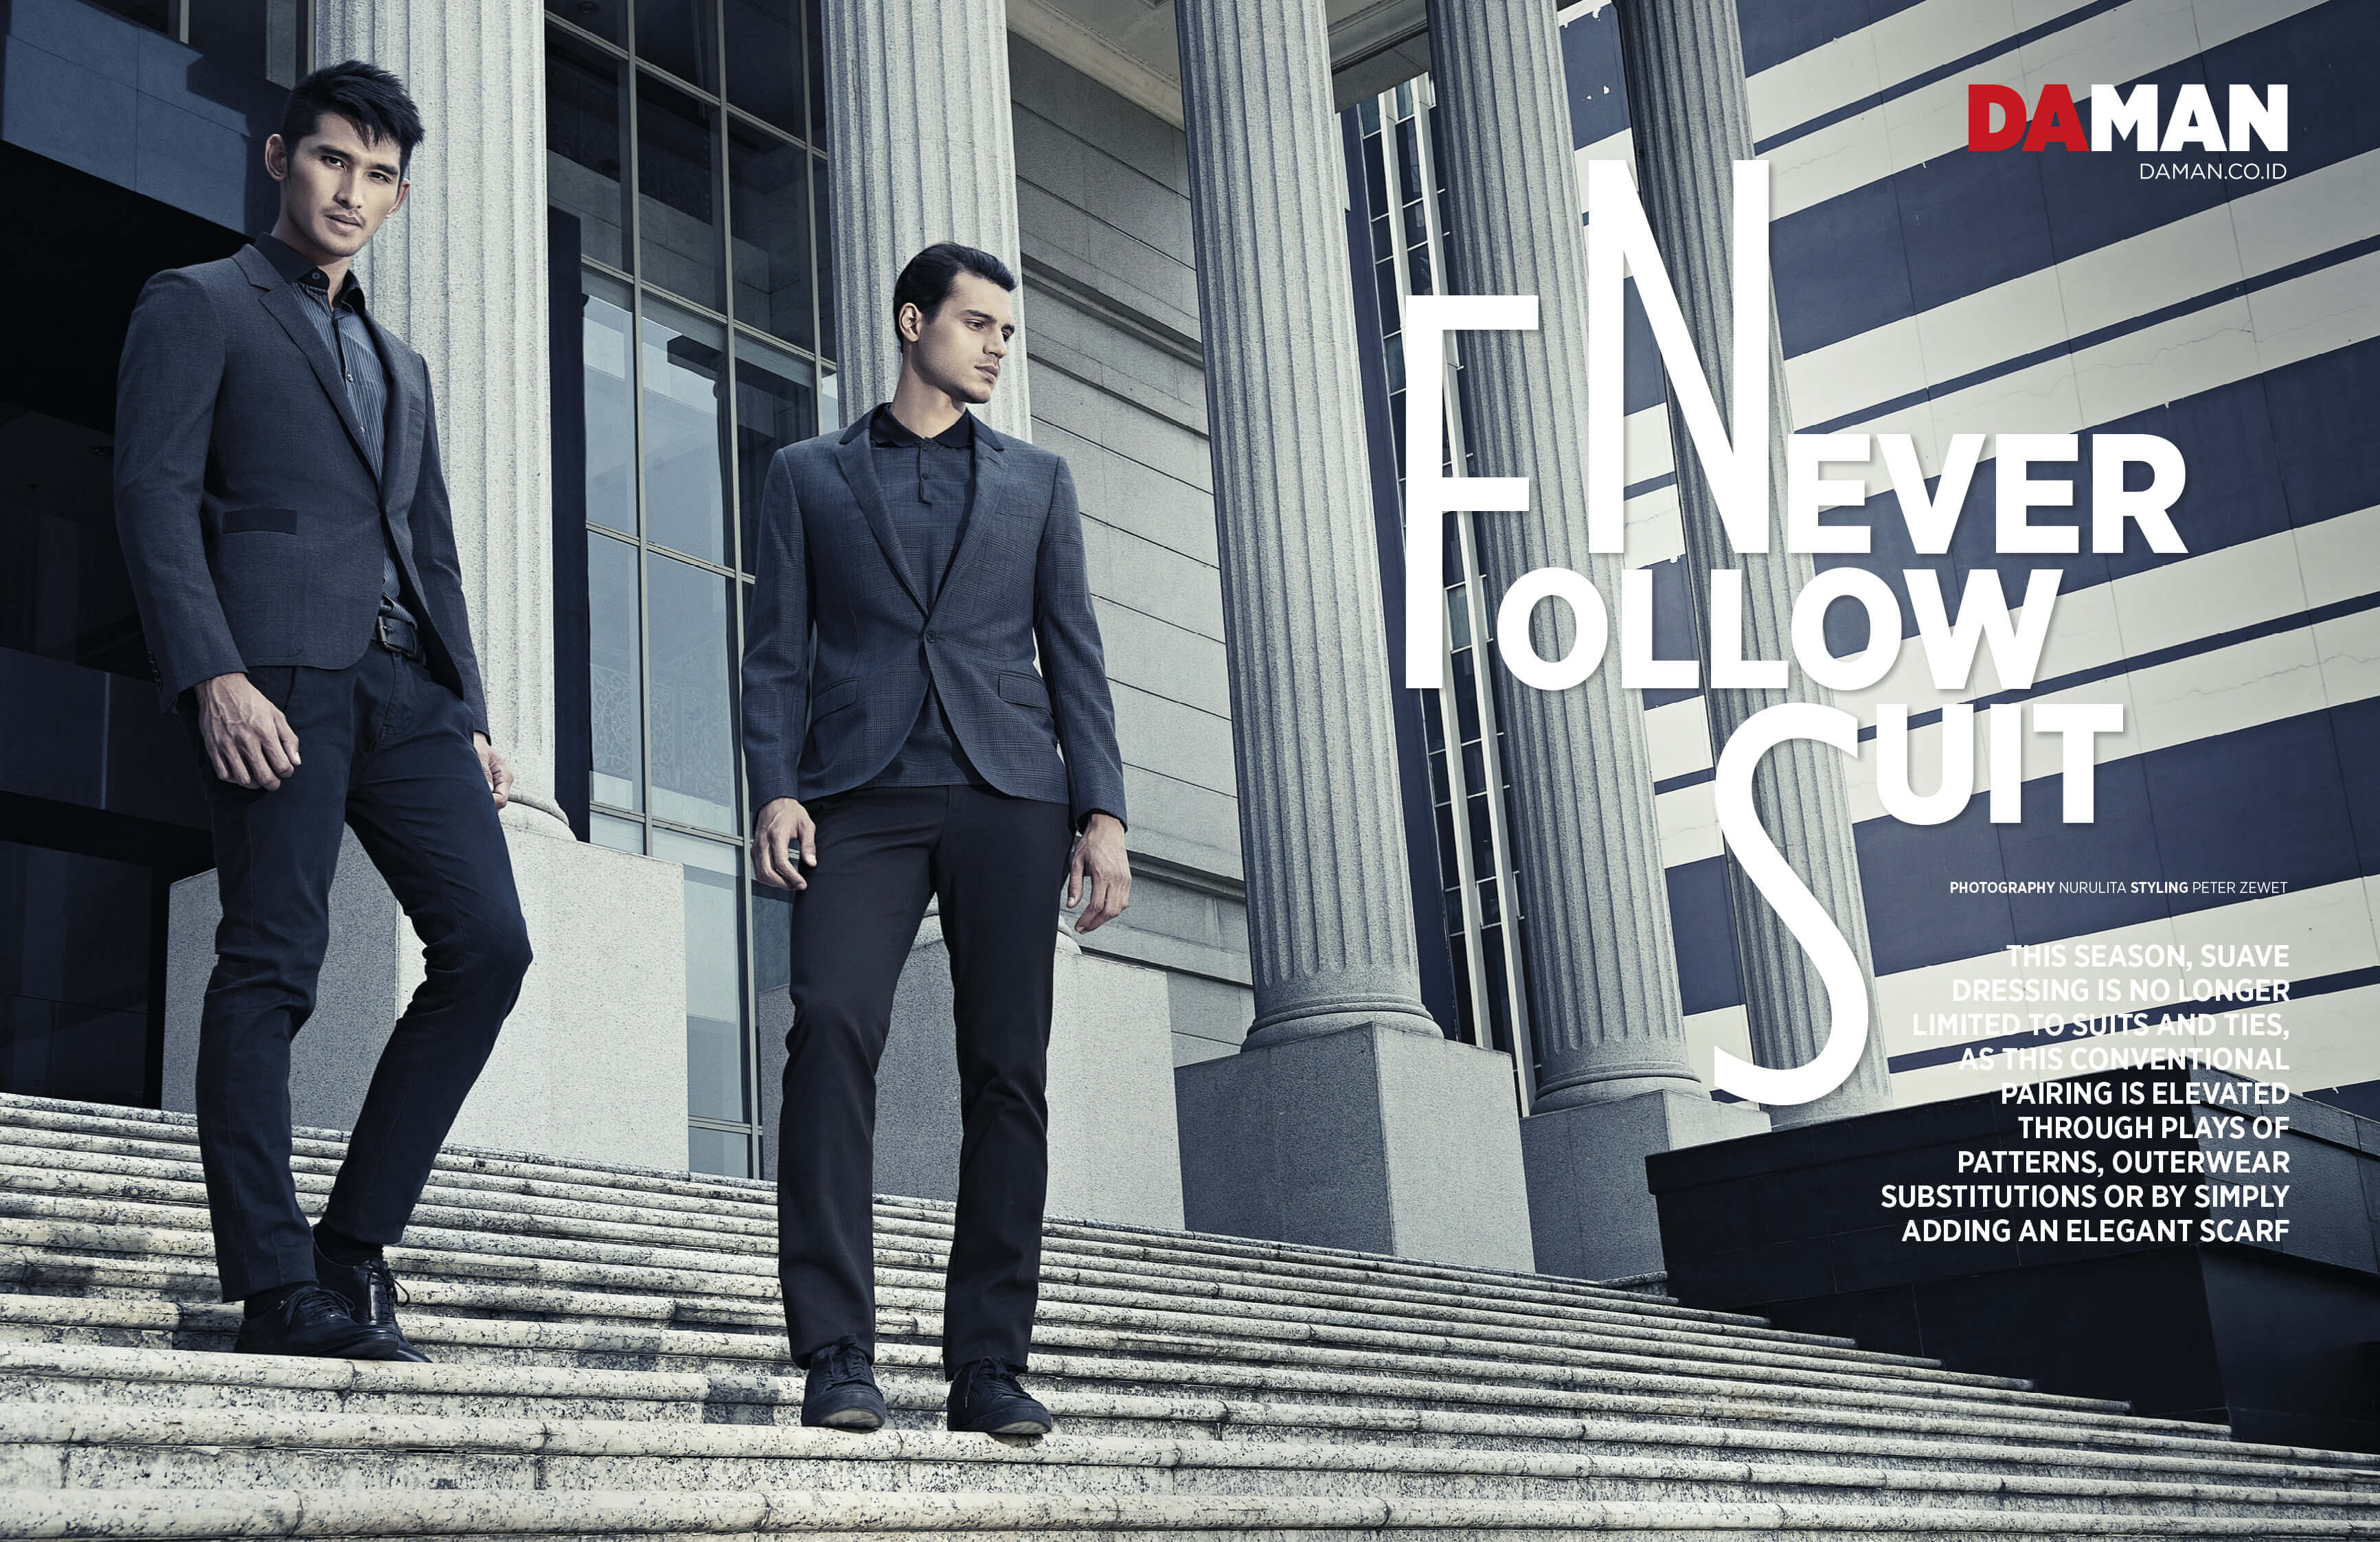 Fashion Spread: Never Follows Suit